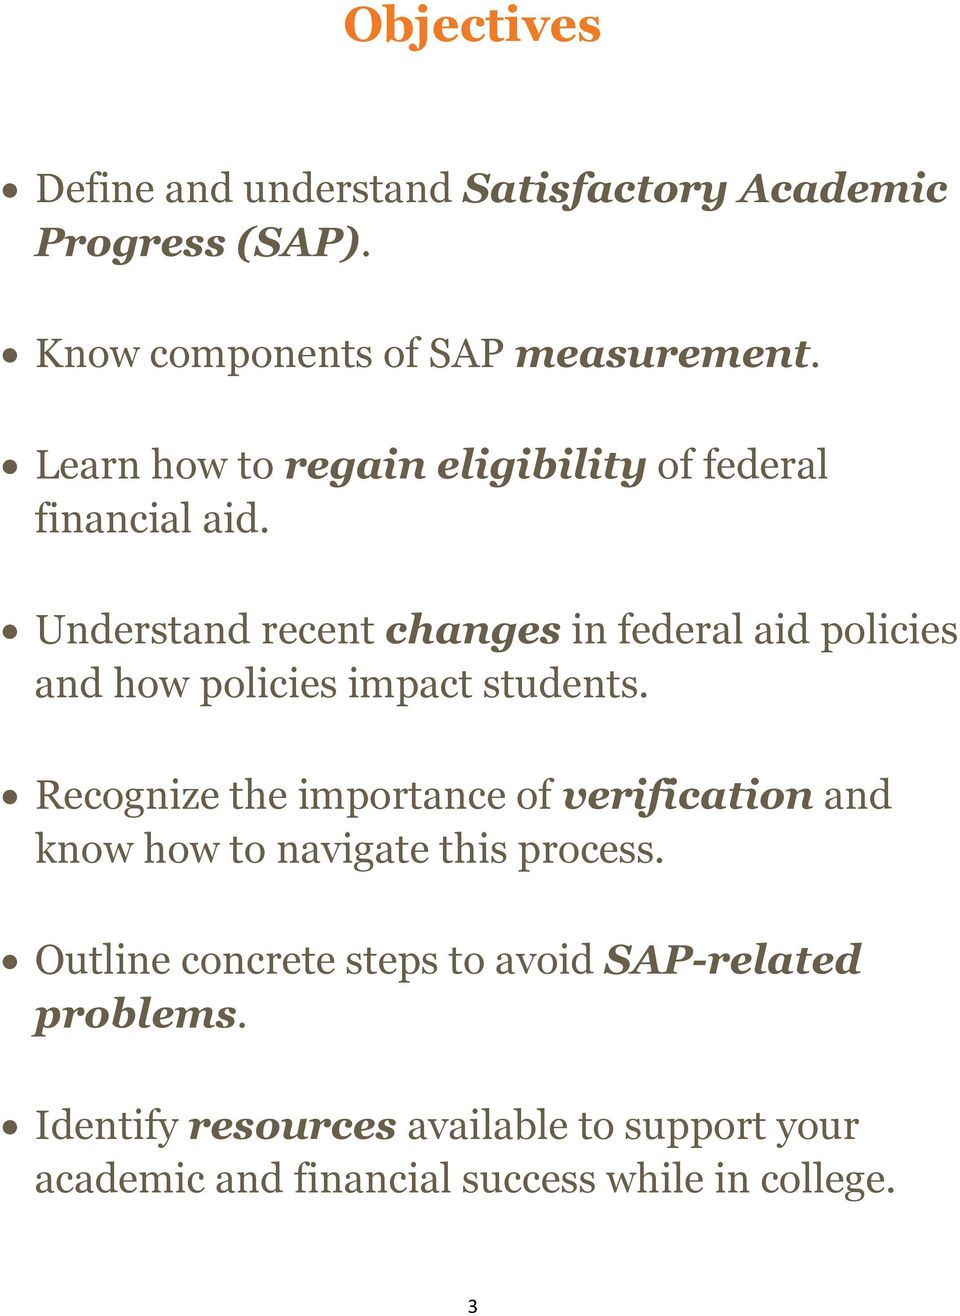 Understand recent changes in federal aid policies and how policies impact students.